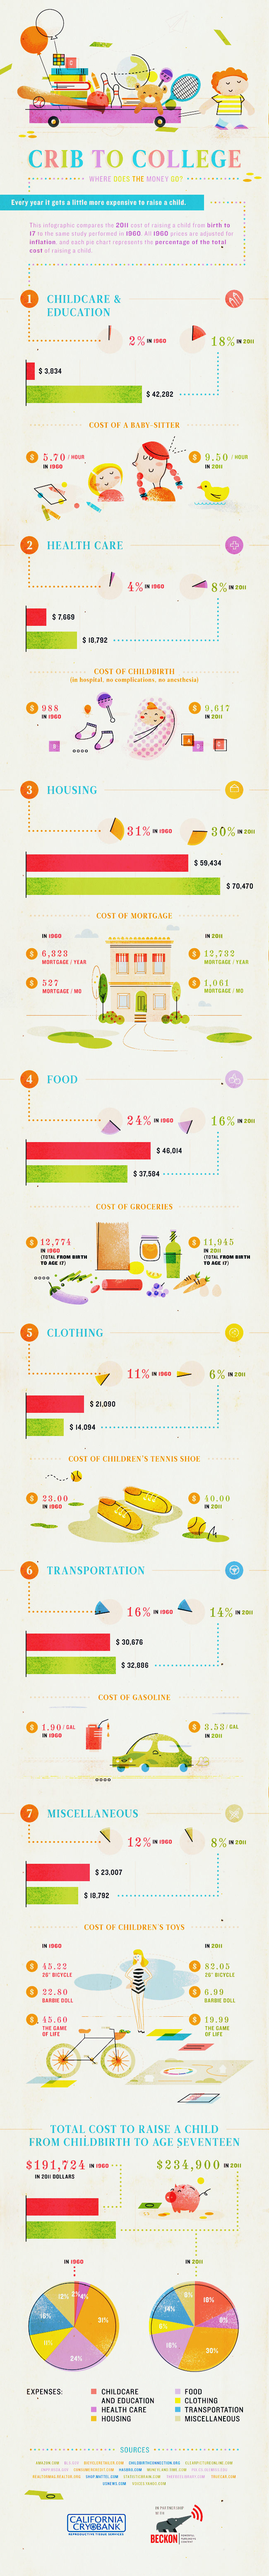 Crib to College. An Infographic comparing the rising cost of raising a child between 1960 and Today.